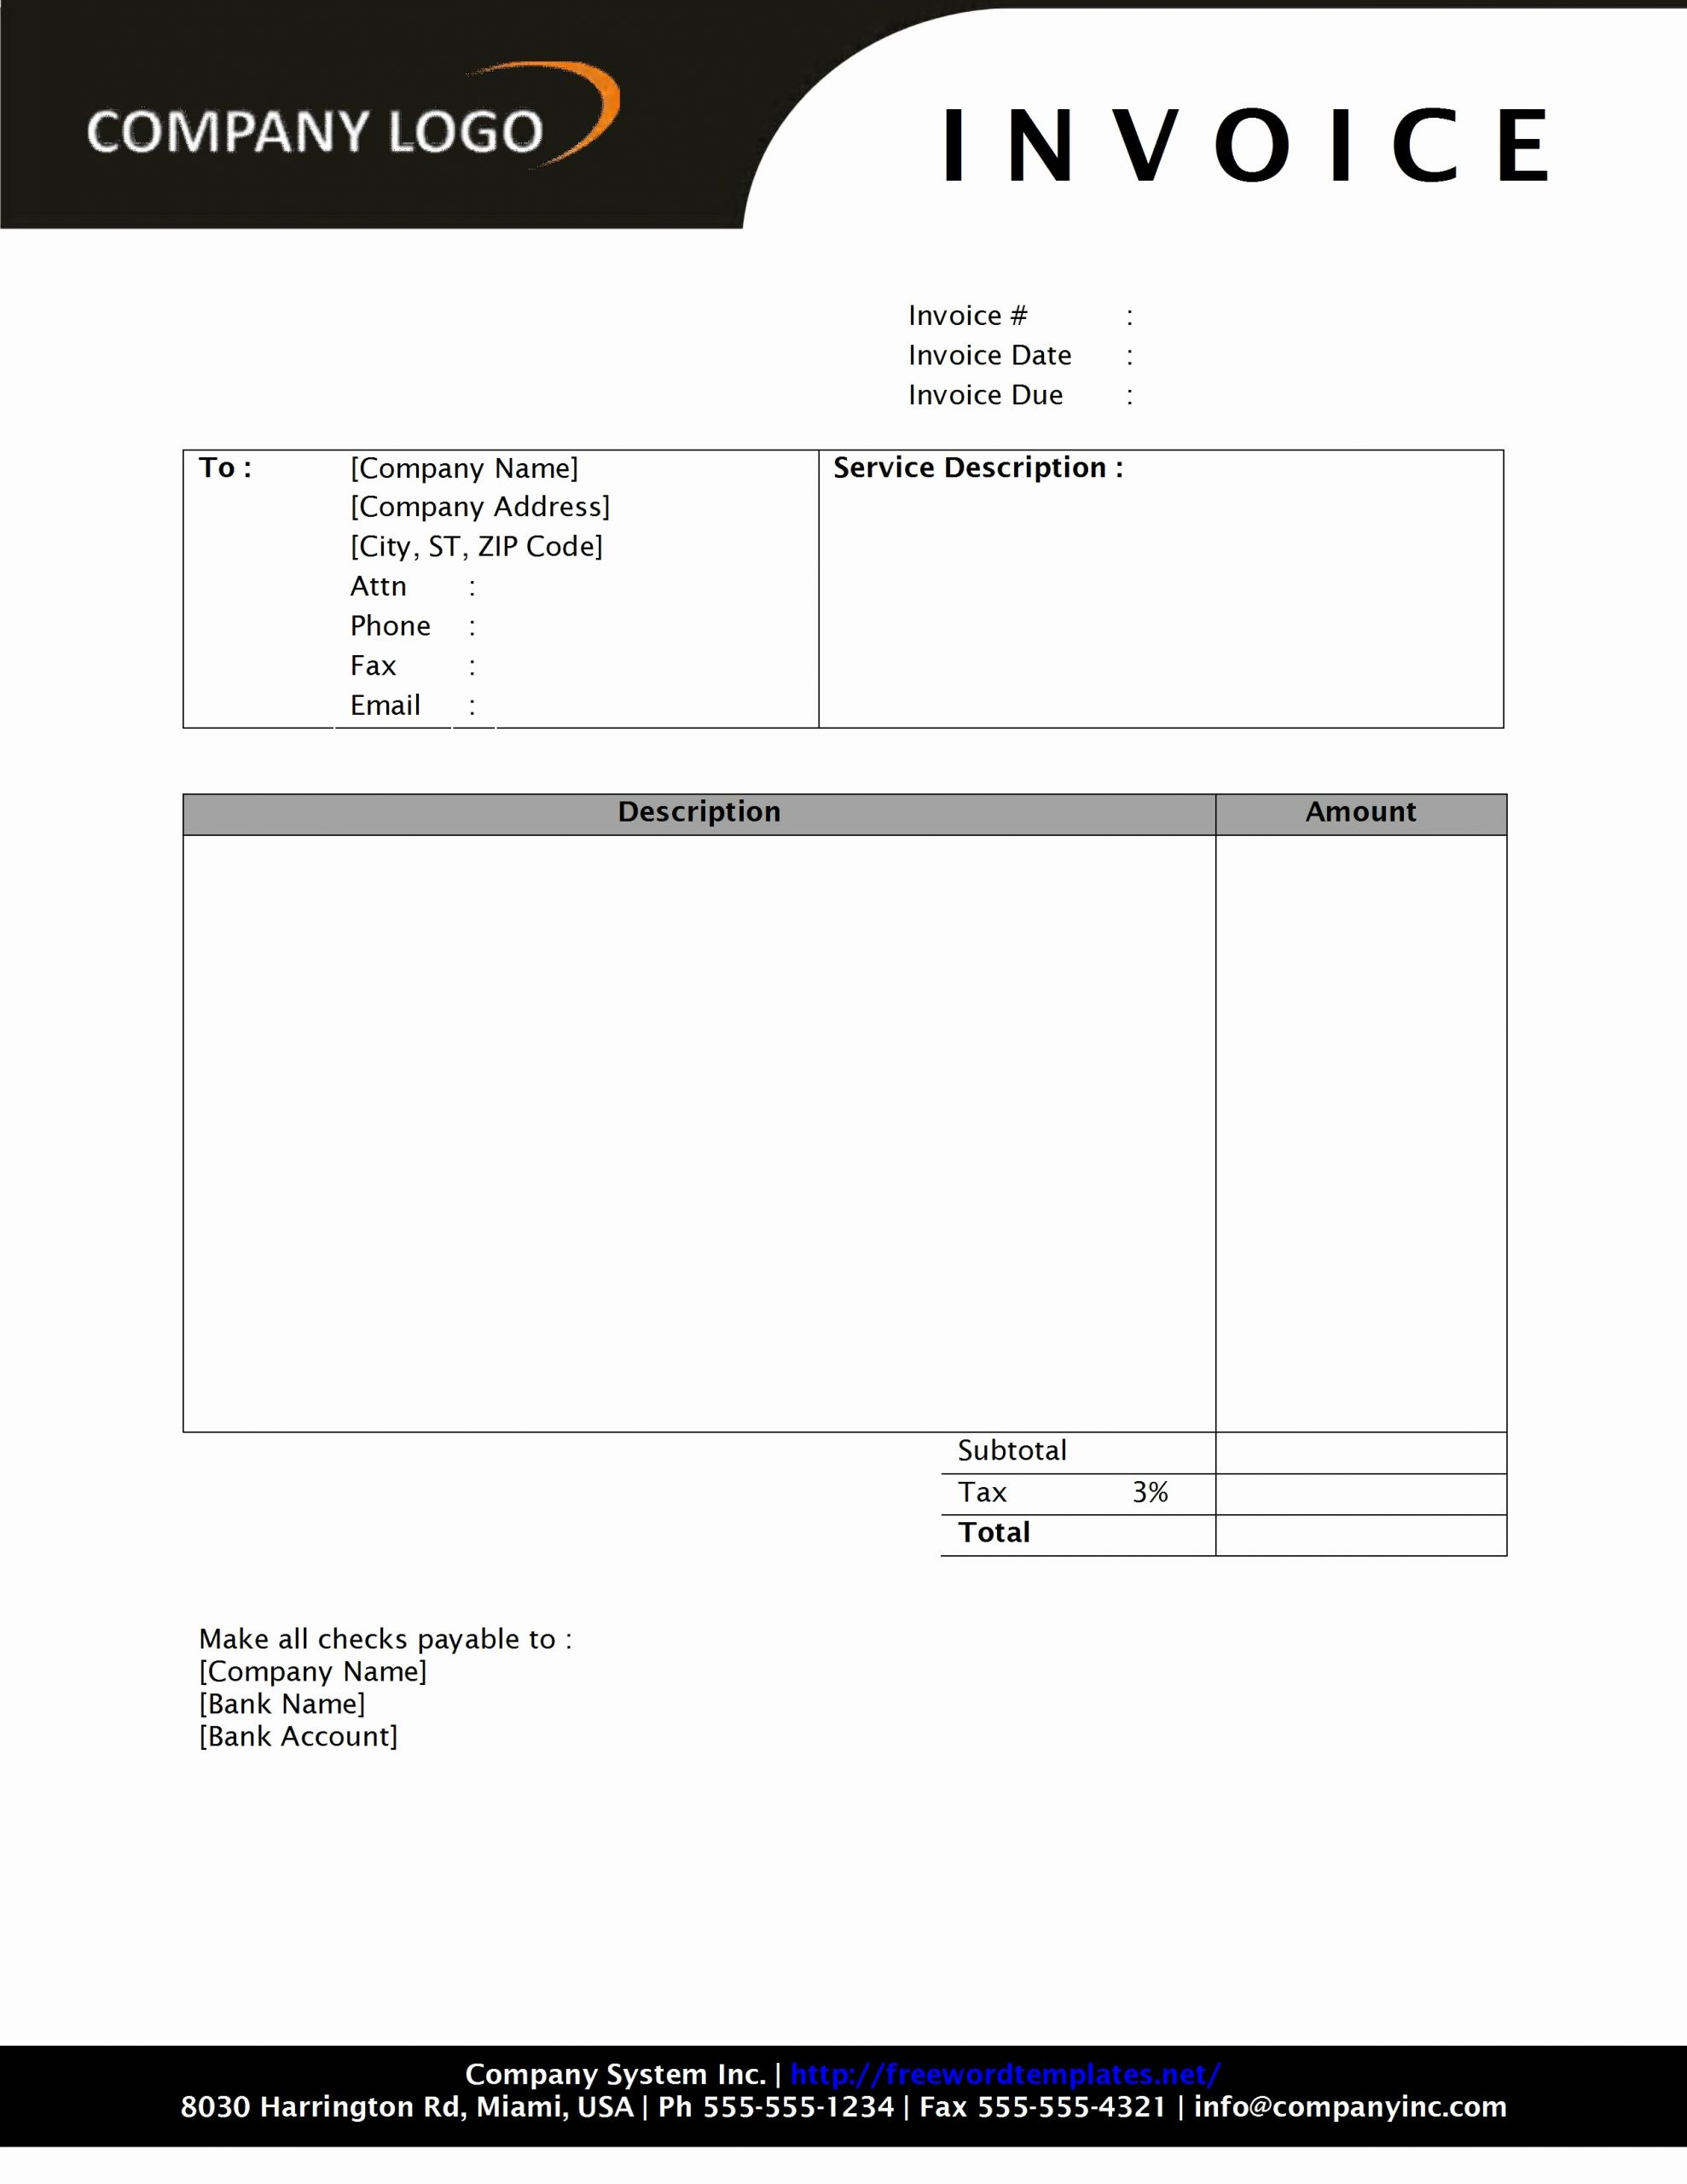 Ms Office Invoice Template Elegant Invoice Template Word 2010